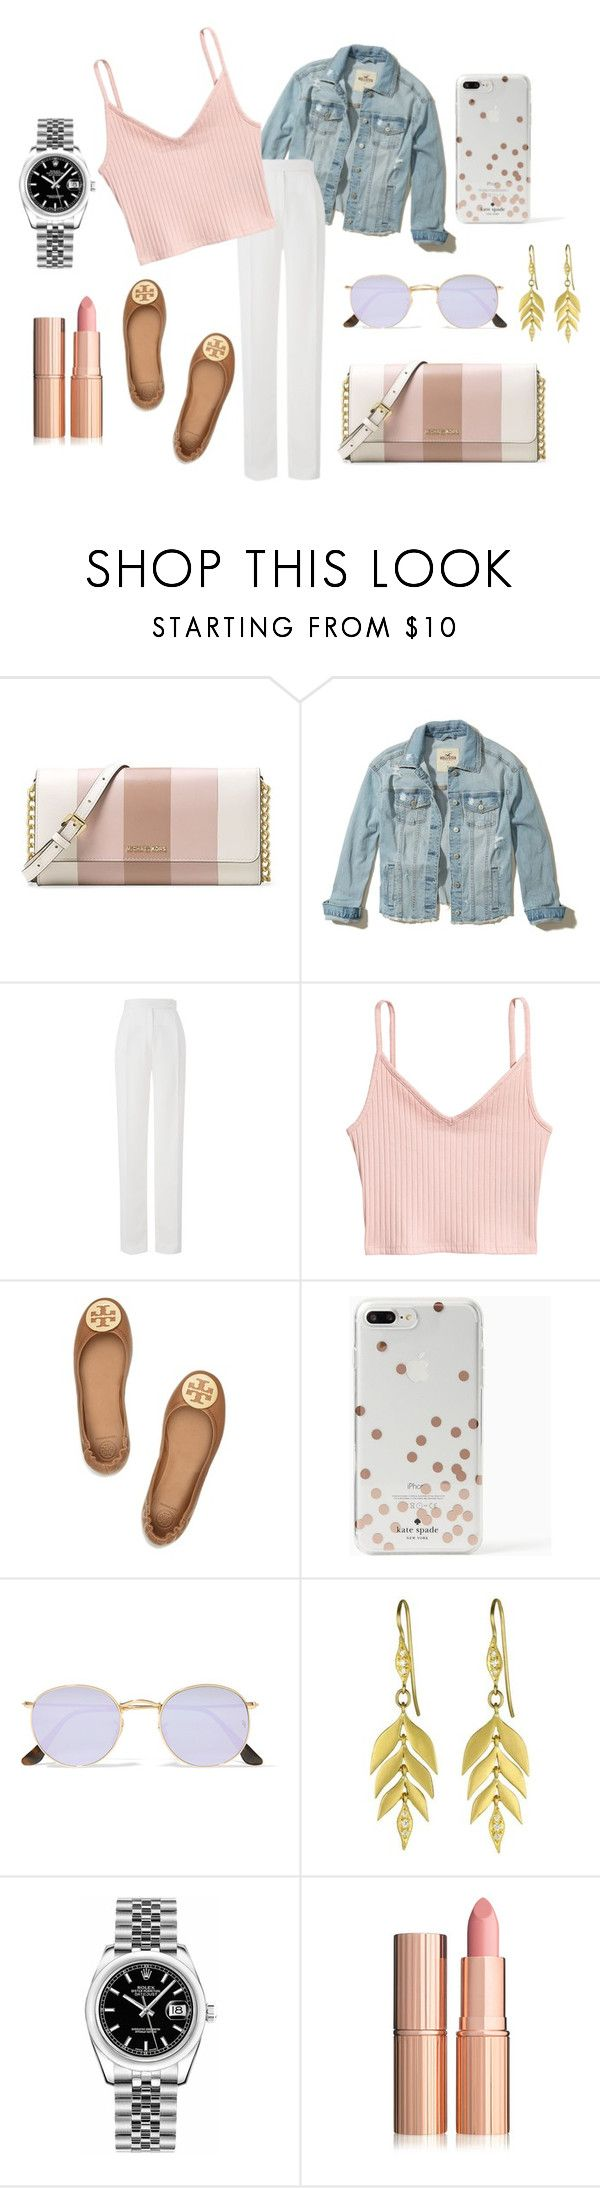 """""""17.10"""" by nicaa on Polyvore featuring moda, MICHAEL Michael Kors, Hollister Co., Amanda Wakeley, Tory Burch, Kate Spade, Ray-Ban e Rolex"""